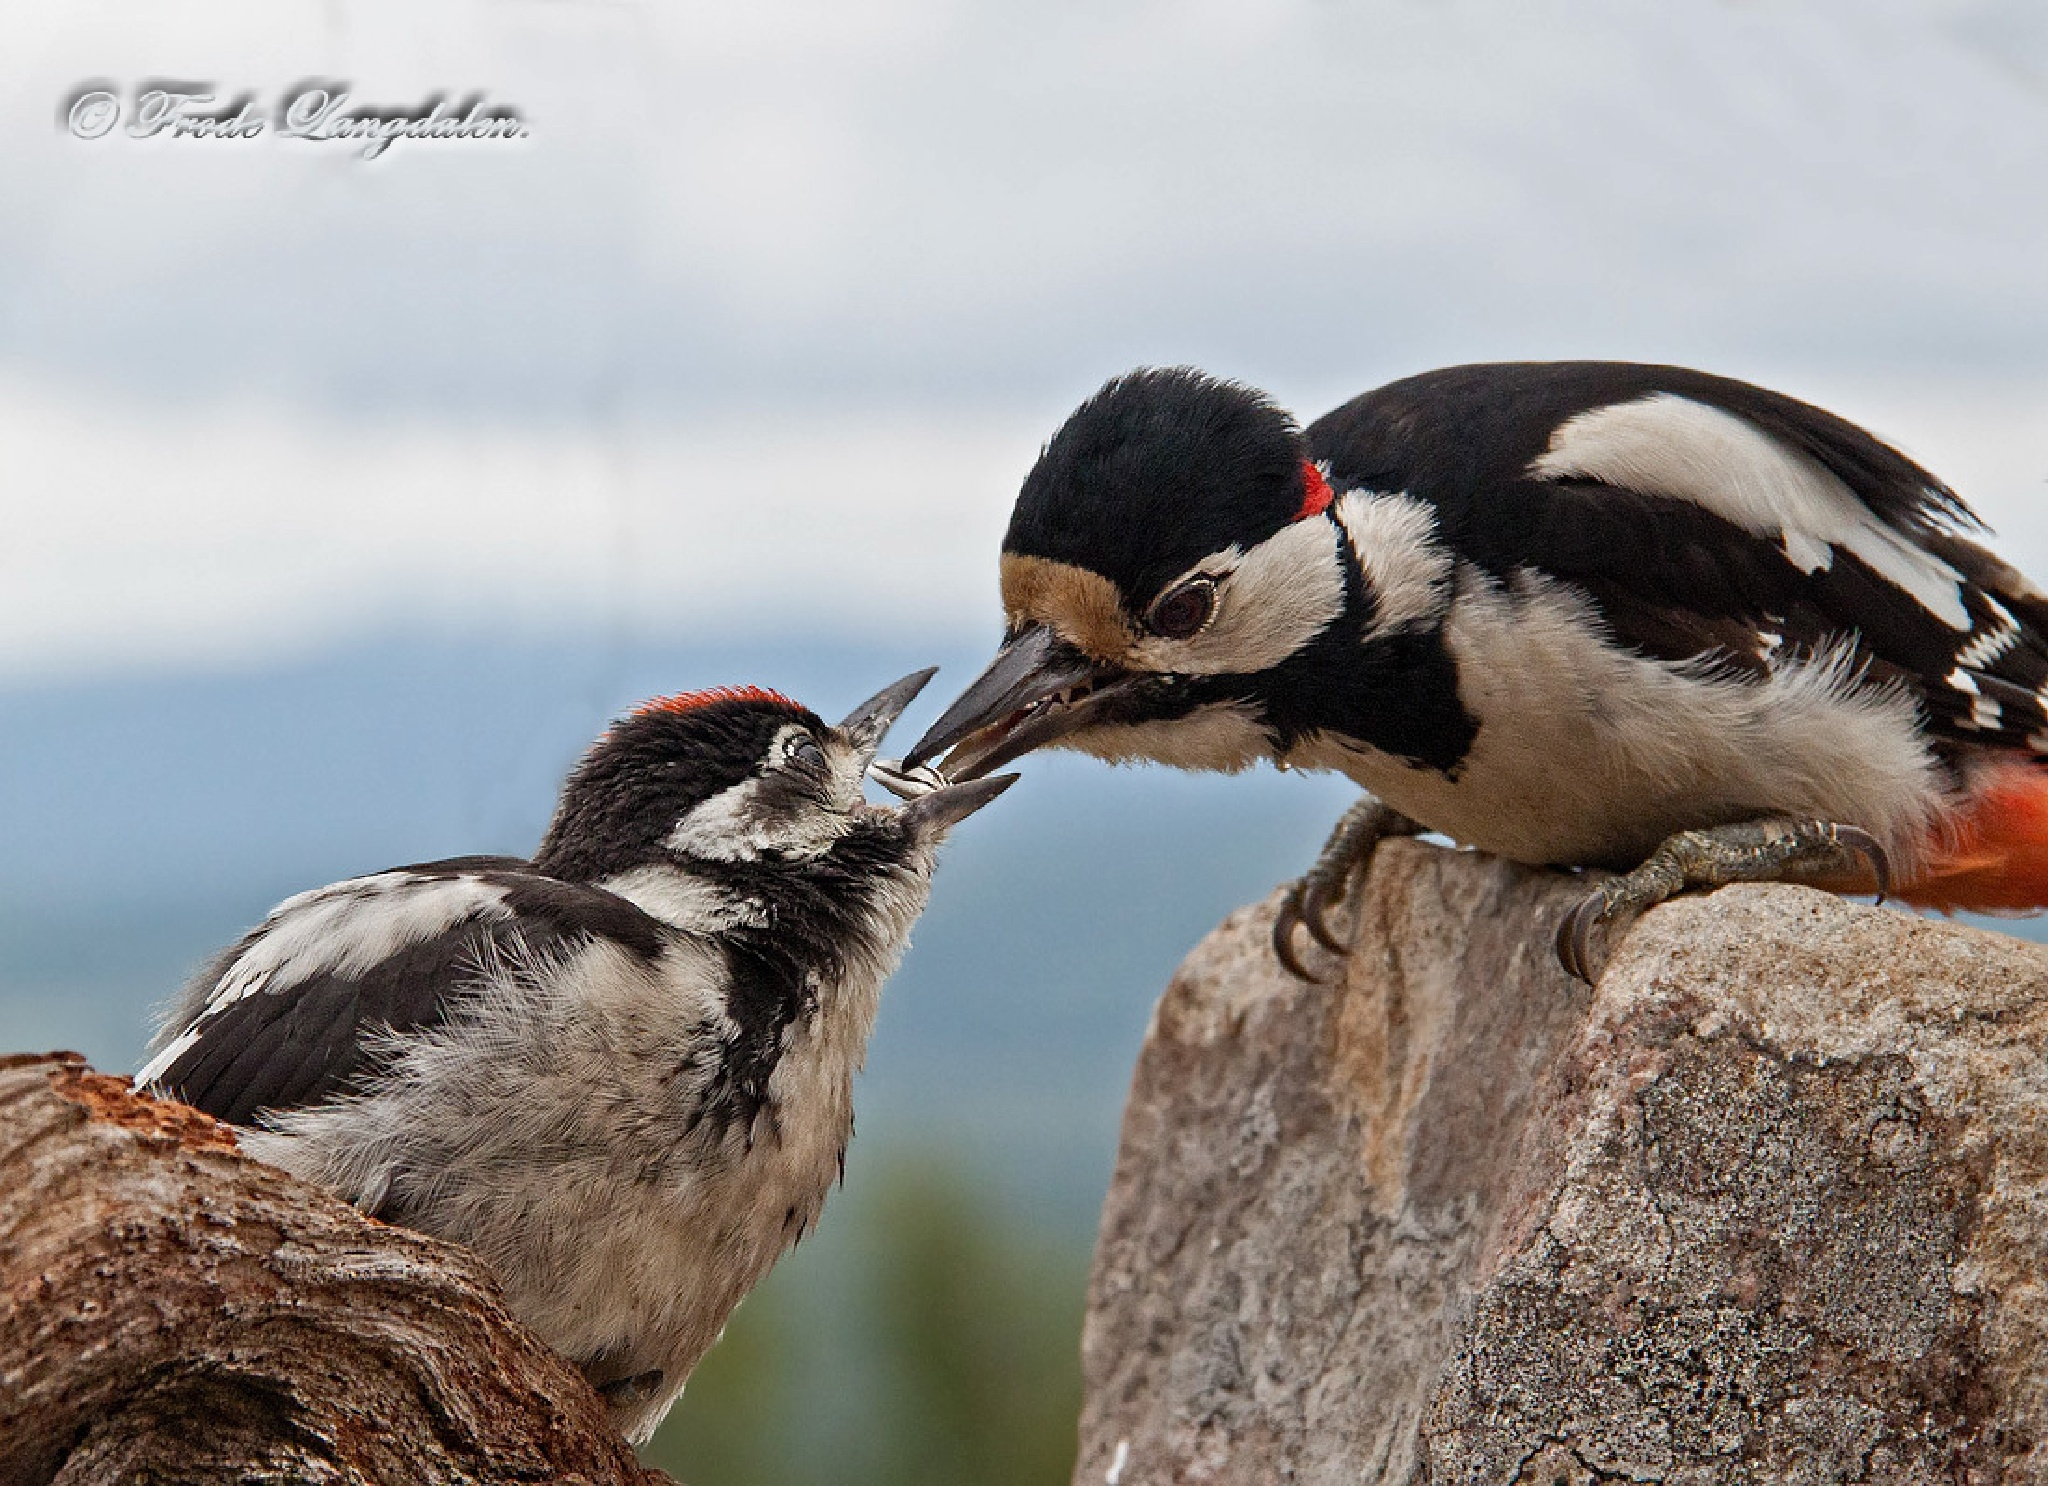 Dinner time. by Frode Langdalen.